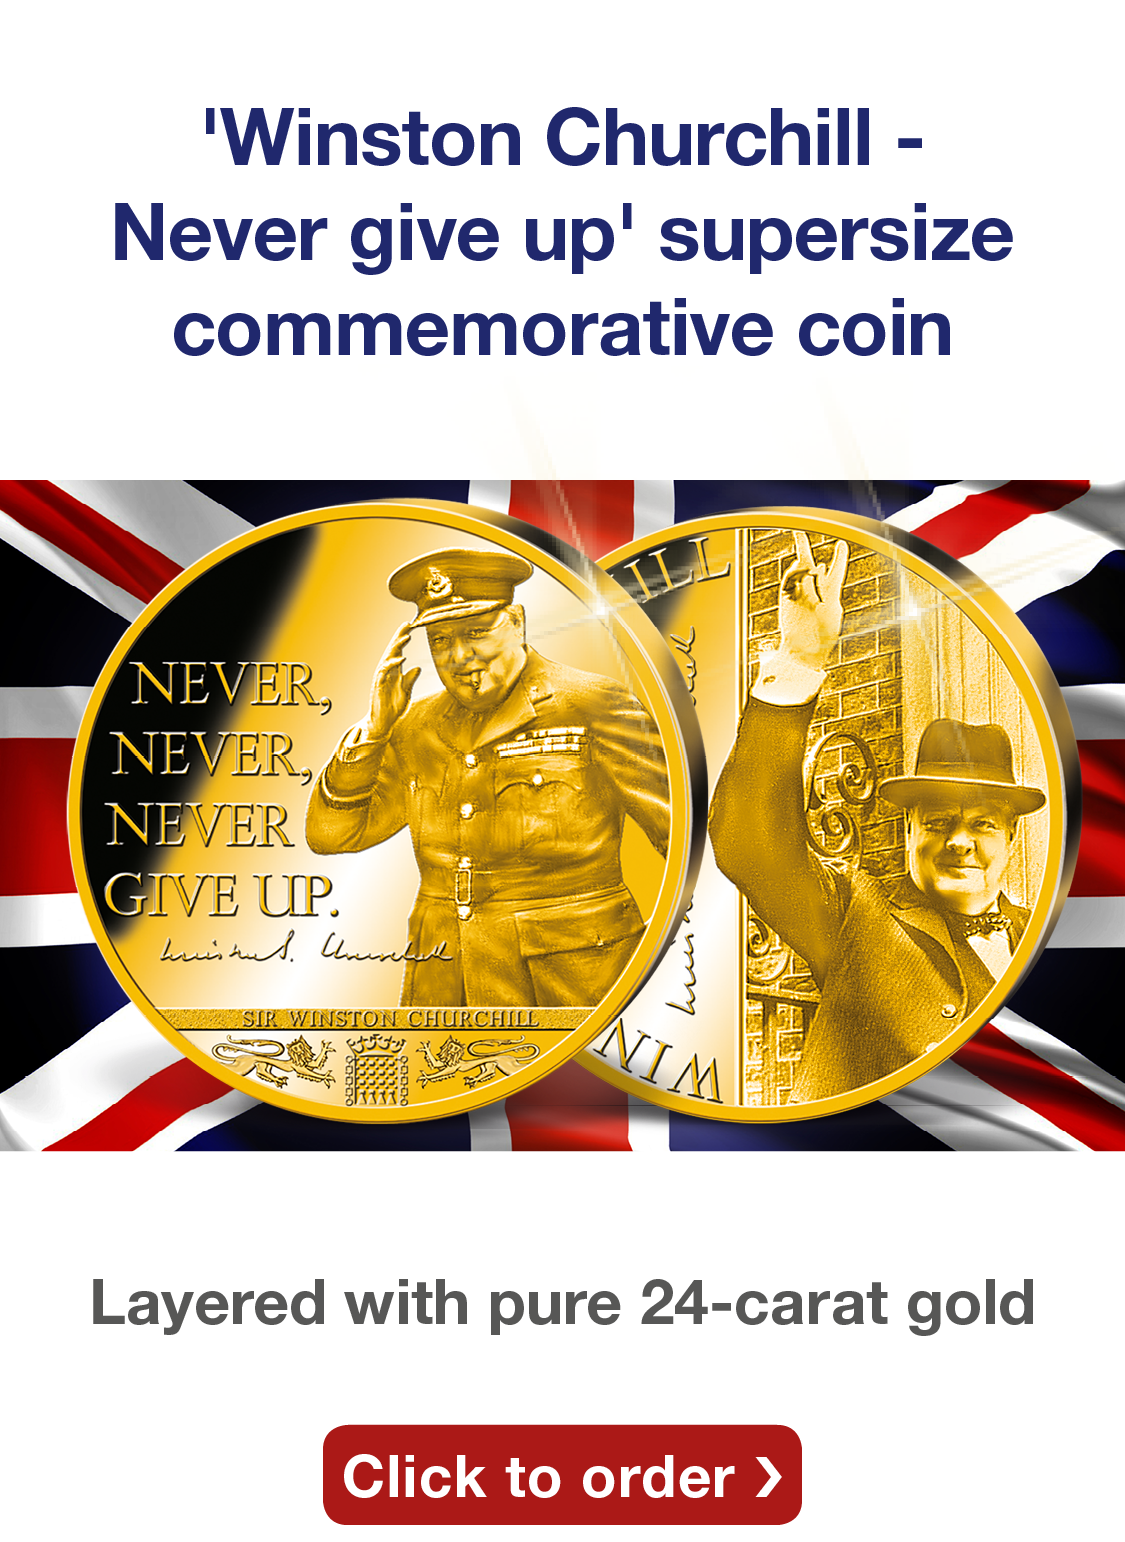 'The Coronation Portrait' Gold Commemorative Strikerike